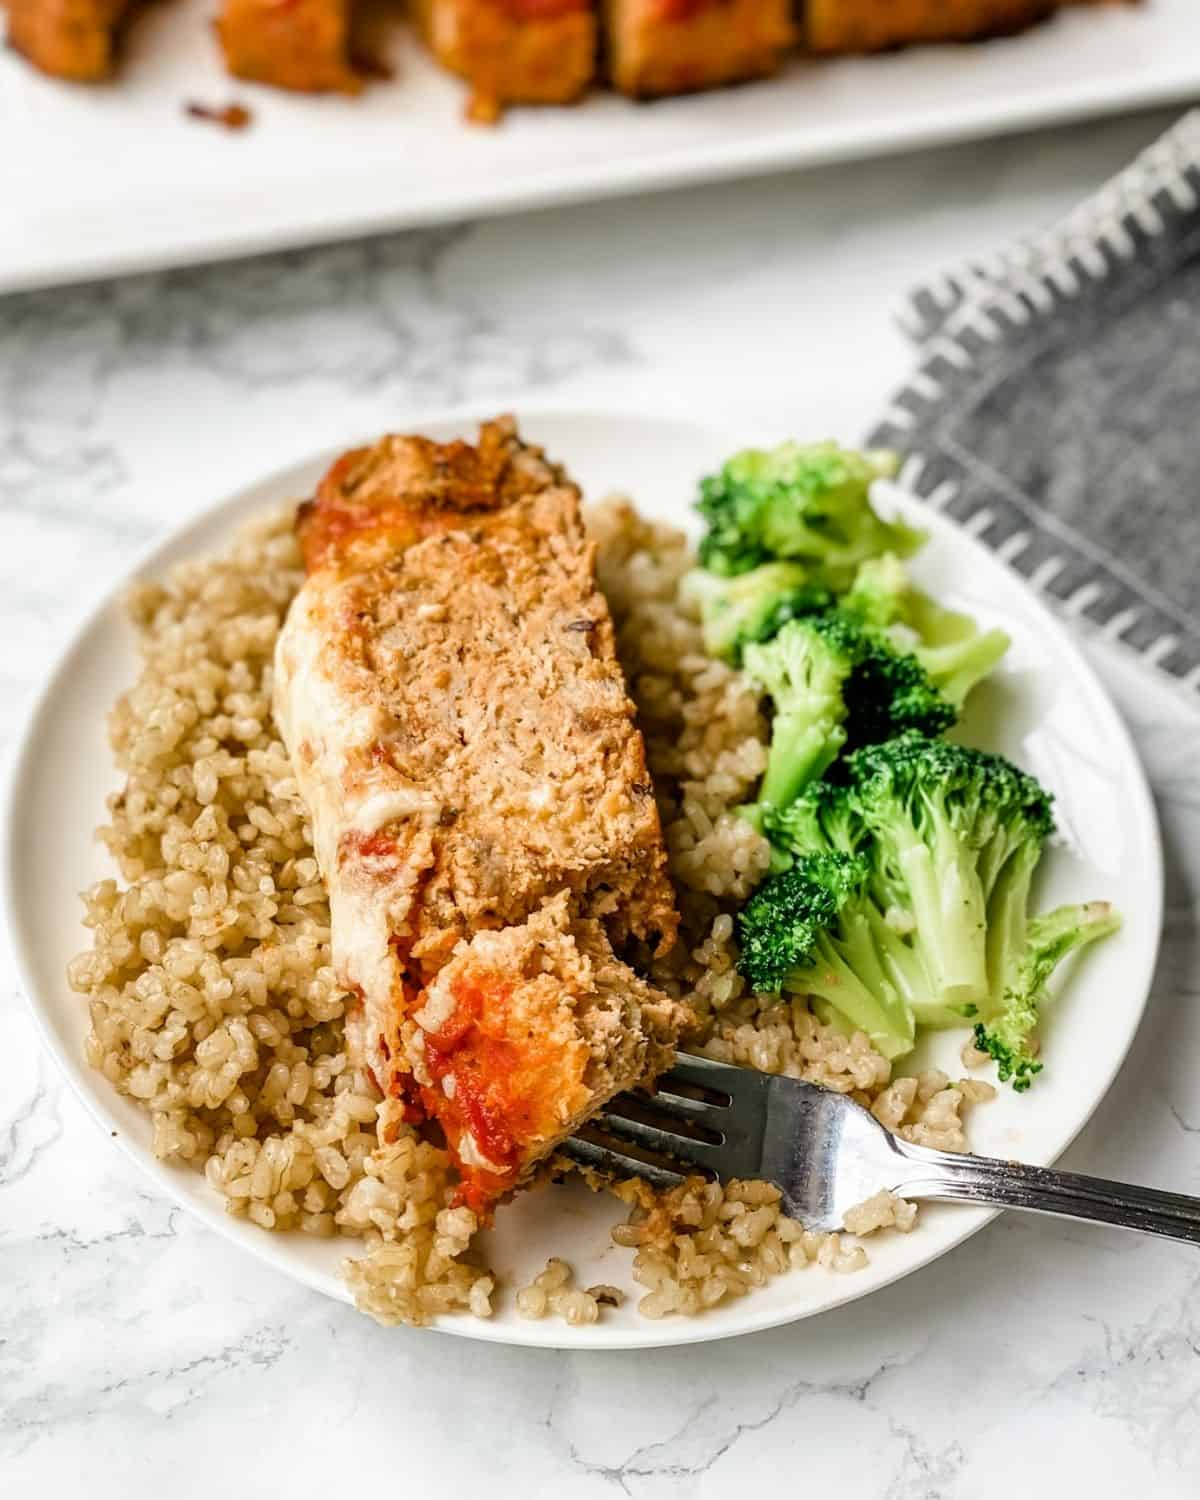 a slice of Italian meatloaf on a plate with rice and broccoli.